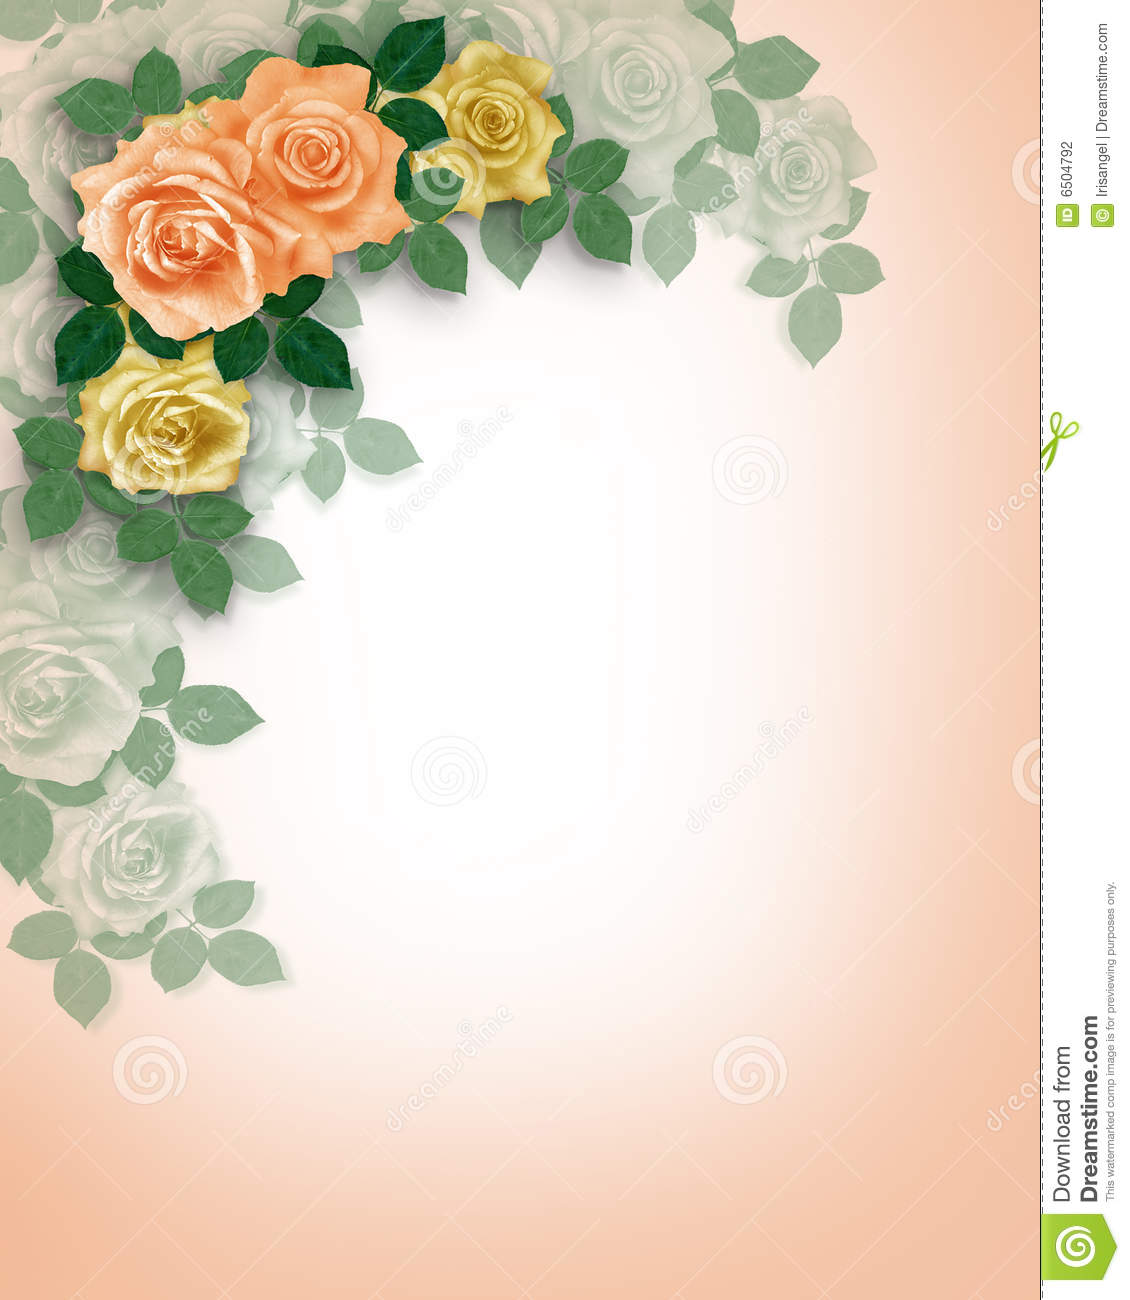 Wedding Invitation Roses Peach Stock Illustration Image